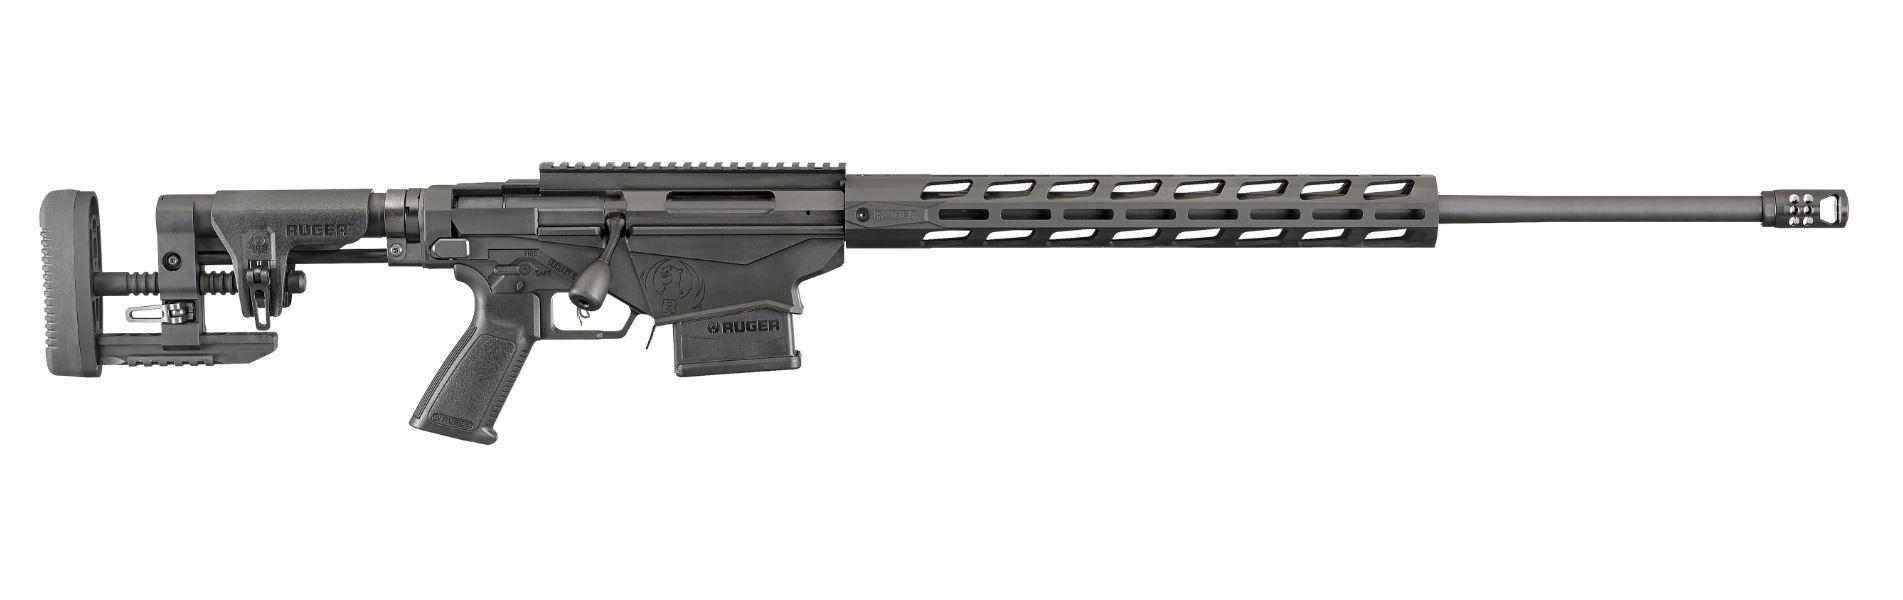 Ruger Rifle Precision-img-0